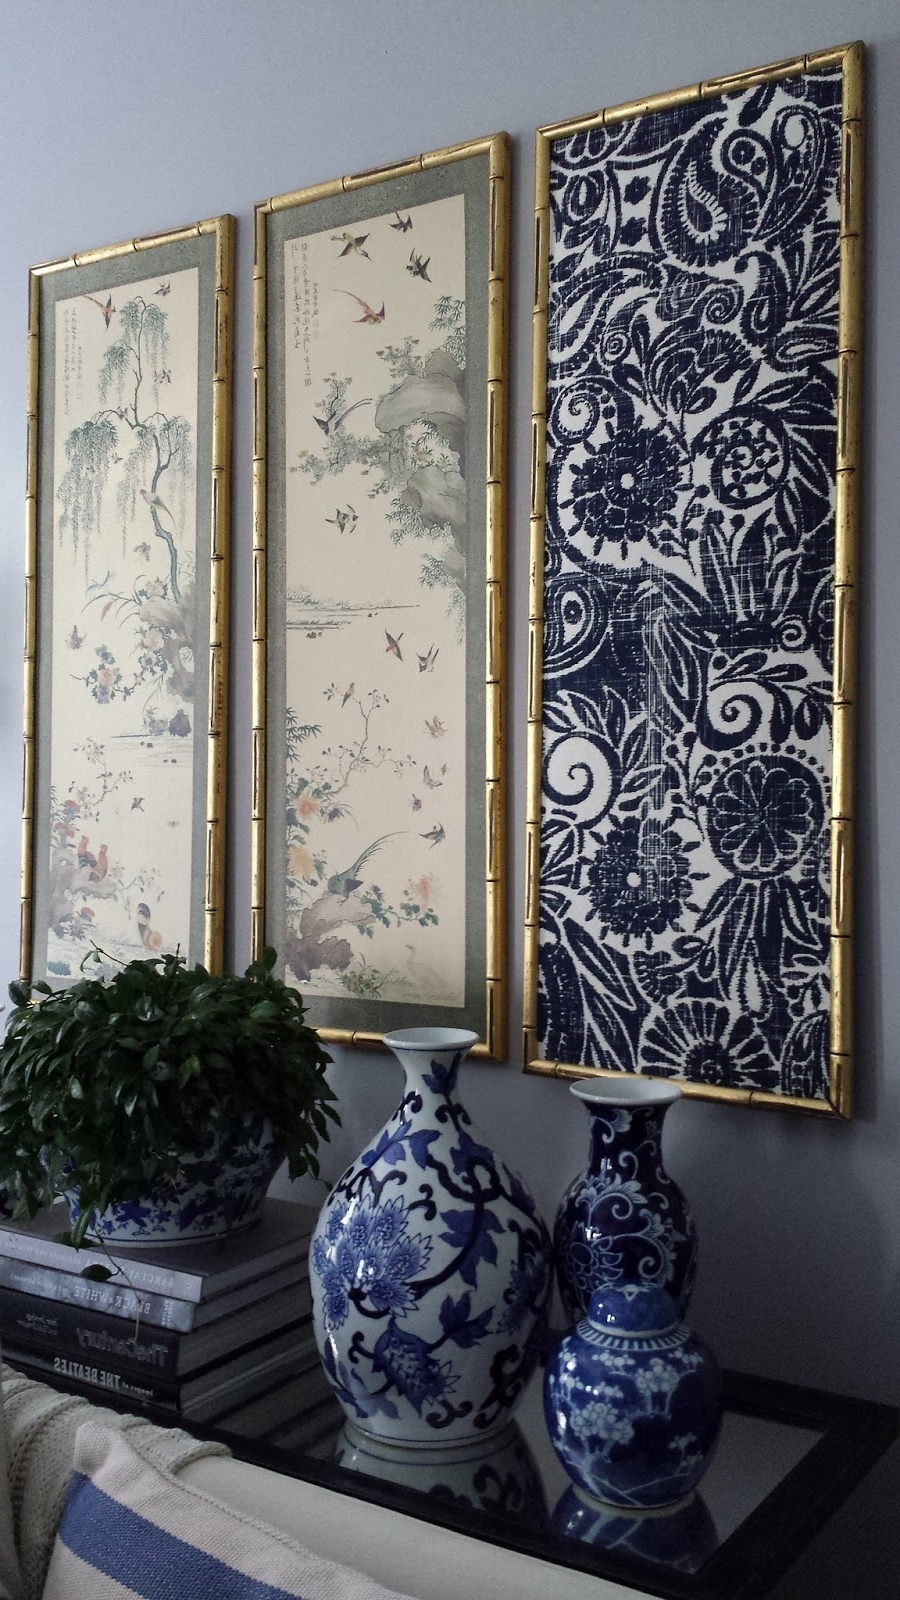 Newest Focal Point Styling: Diy Indigo Wall Art With Framed Fabric Intended For Large Fabric Wall Art (View 14 of 15)